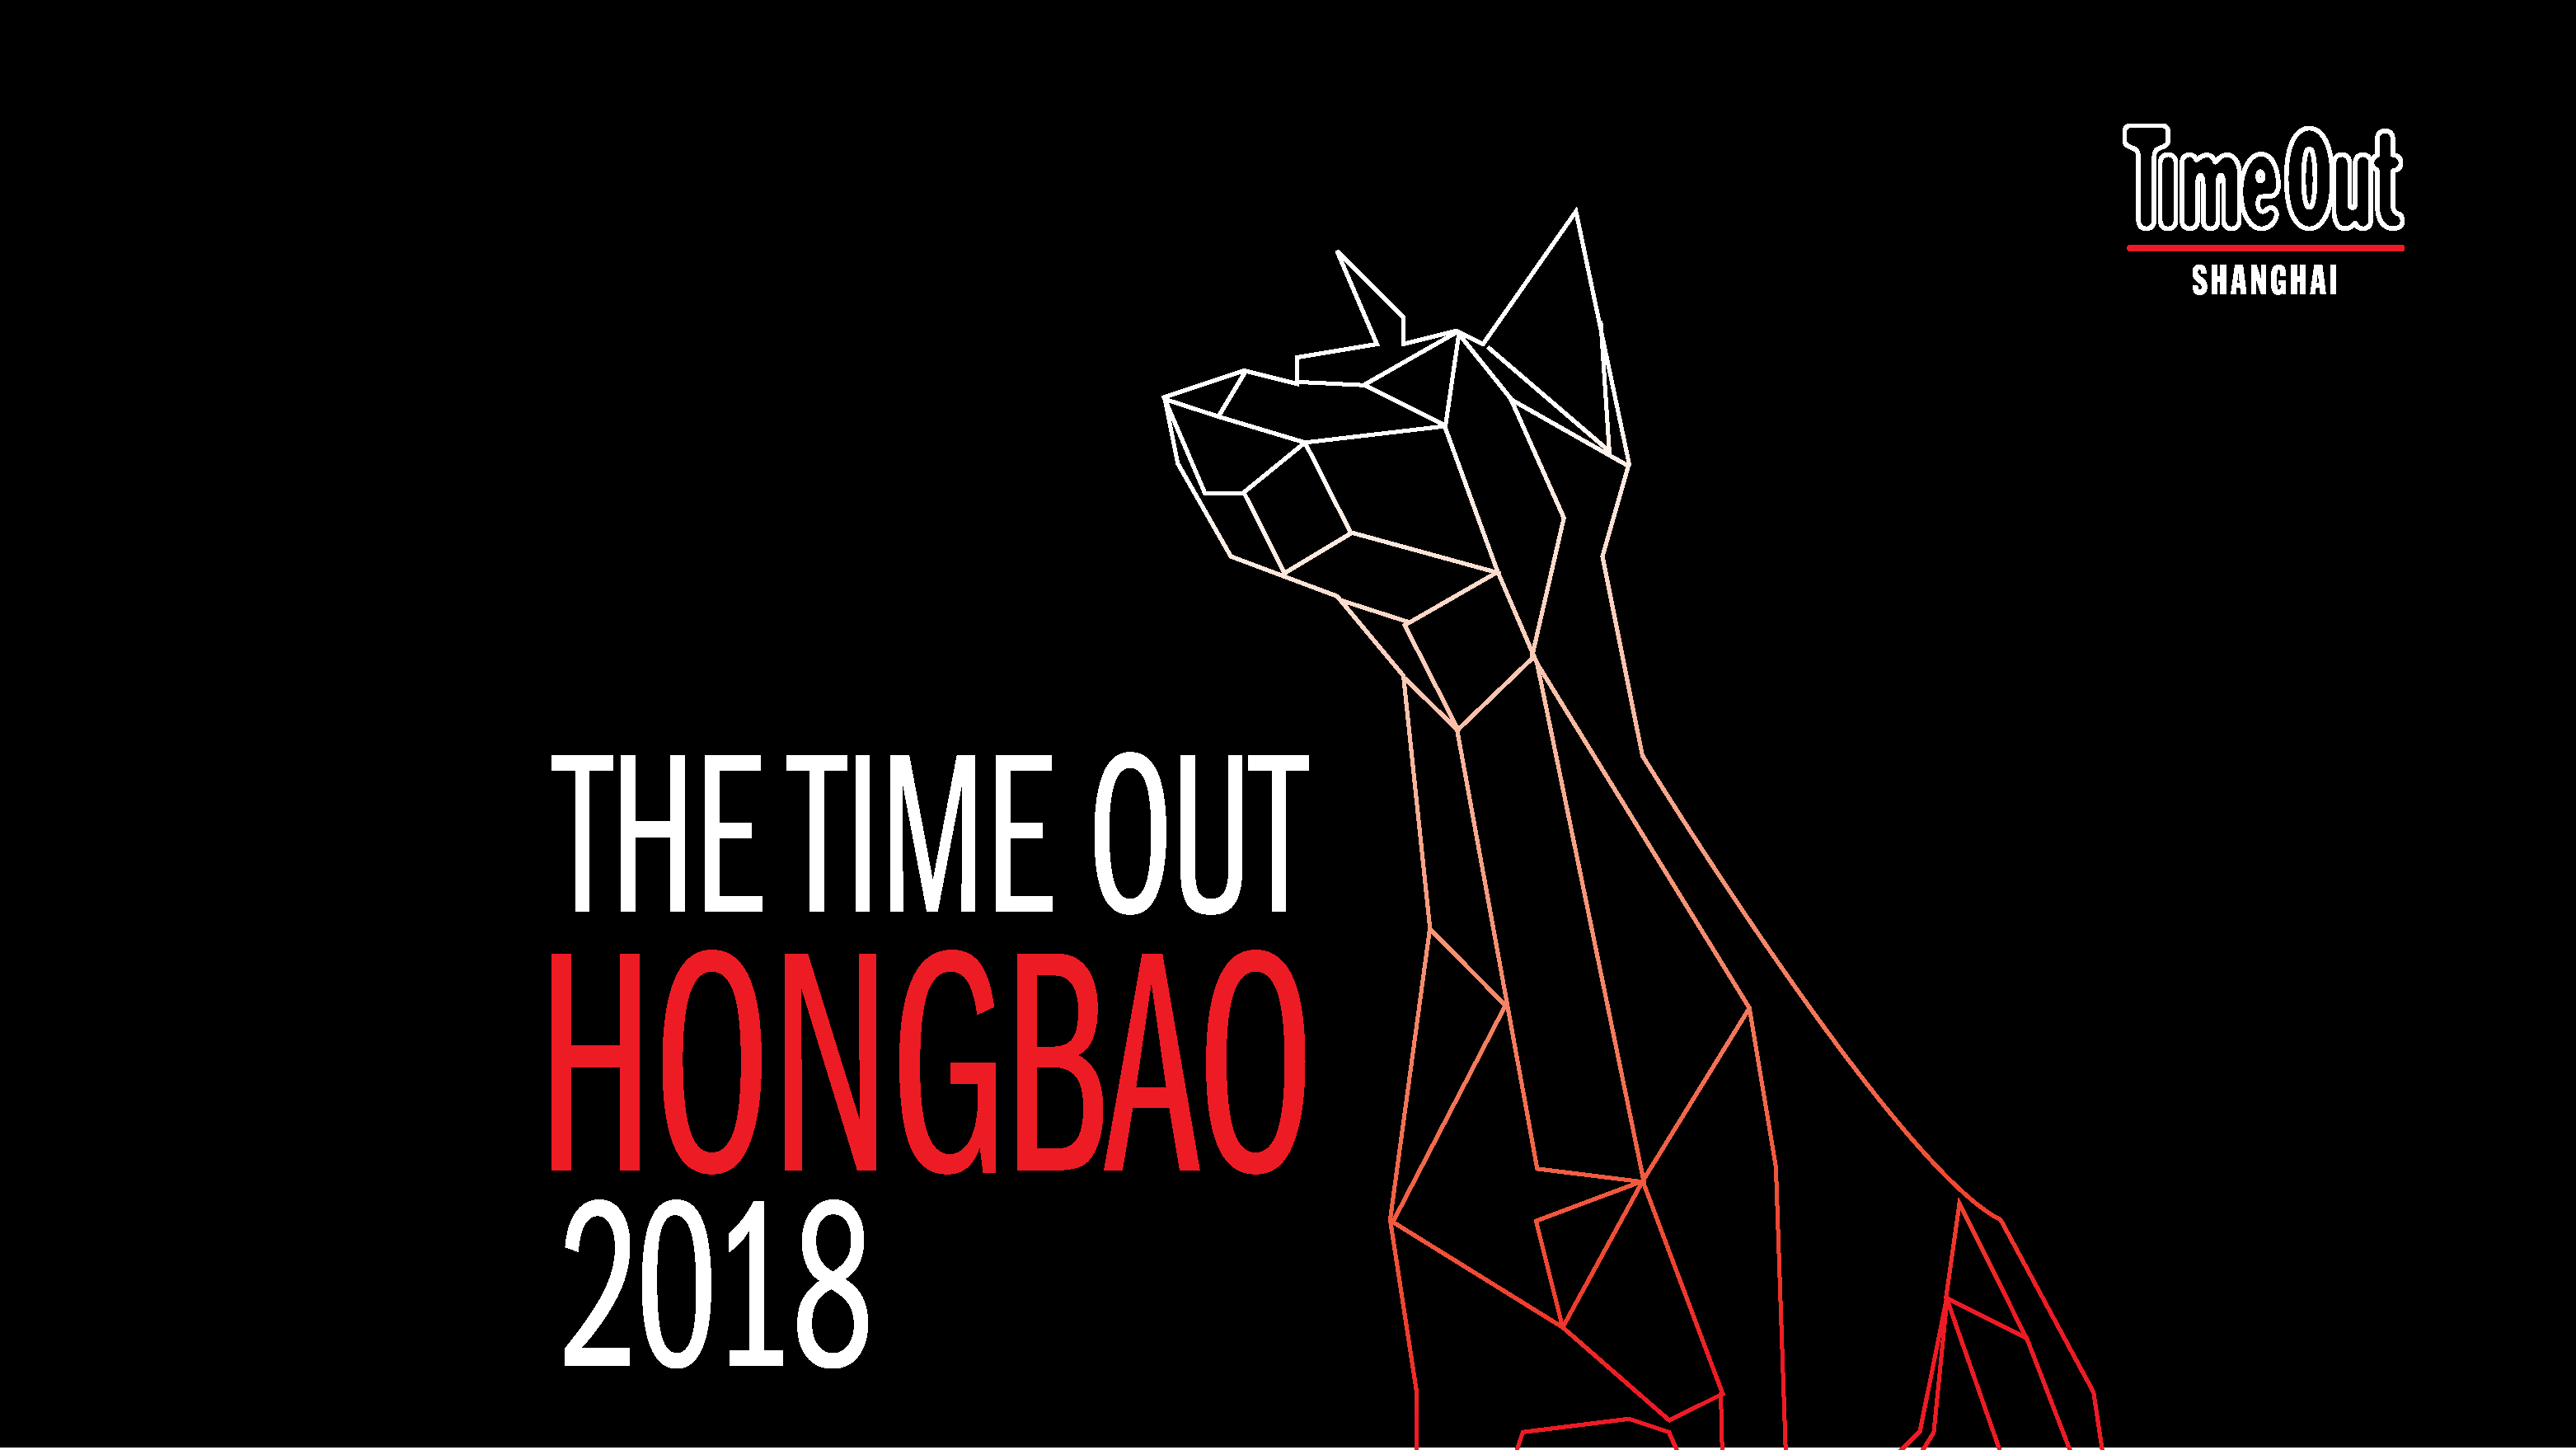 The Time Out Hongbao 2018: win 4 bottles of Aussieres Blanc wine